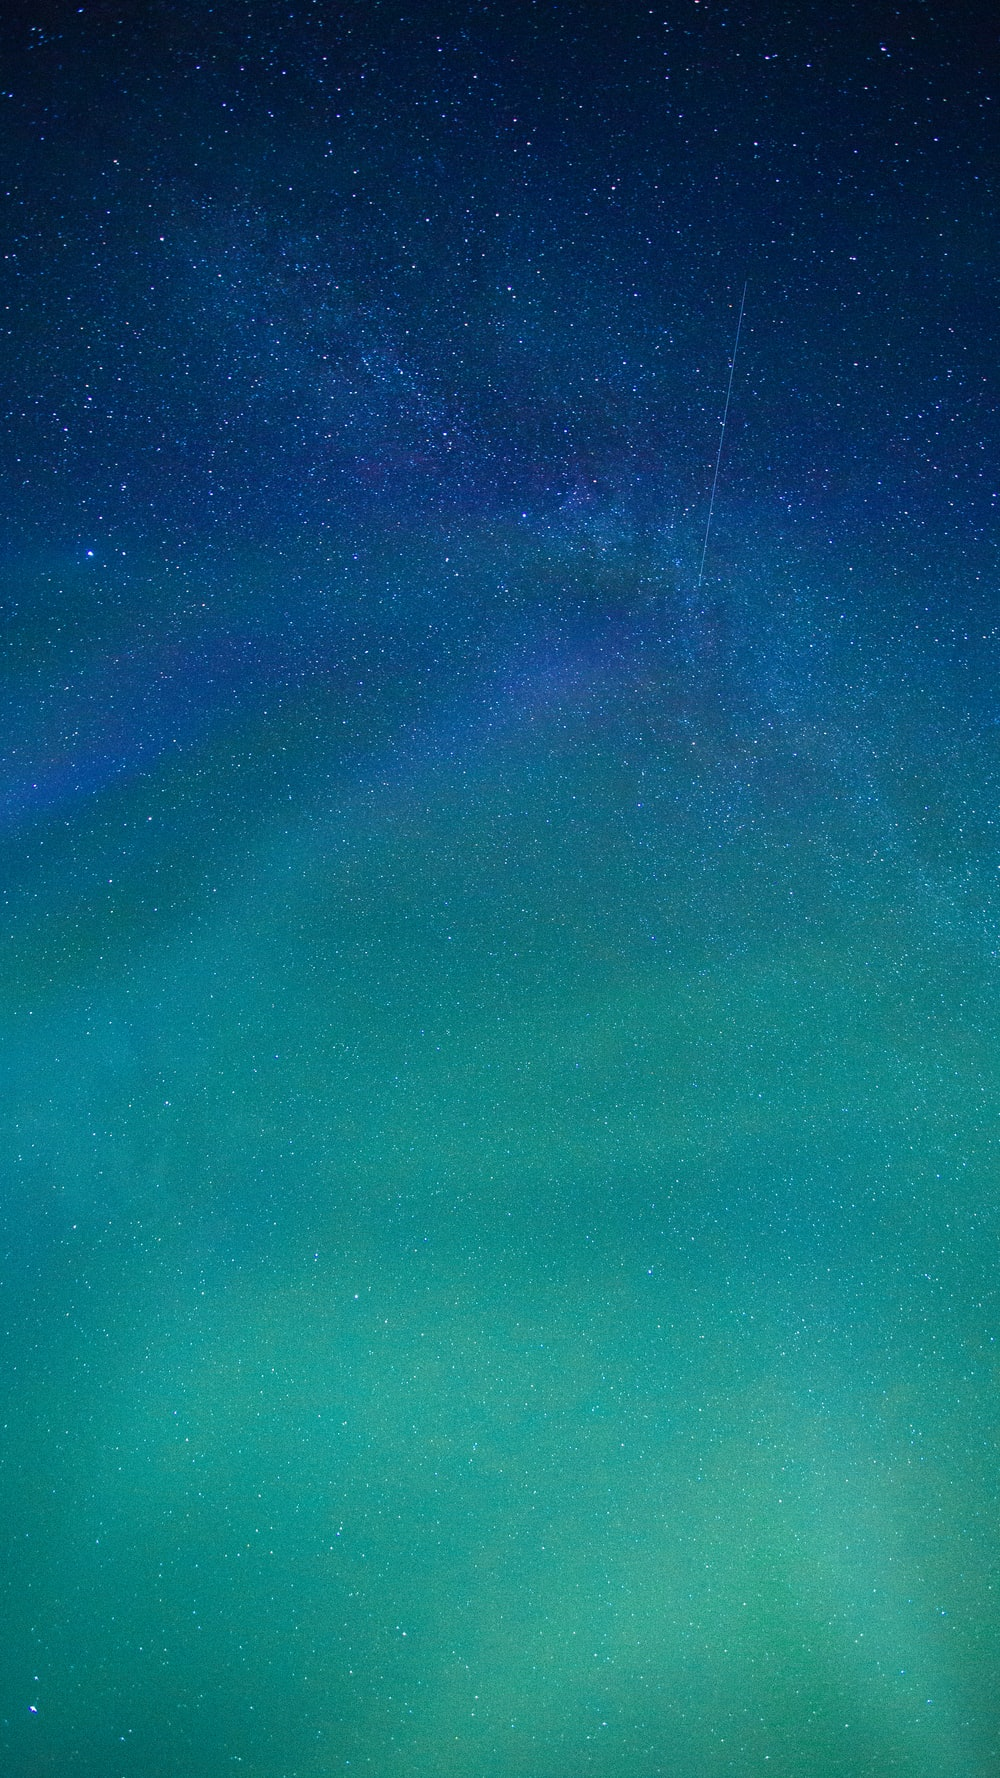 blue and black sky with stars